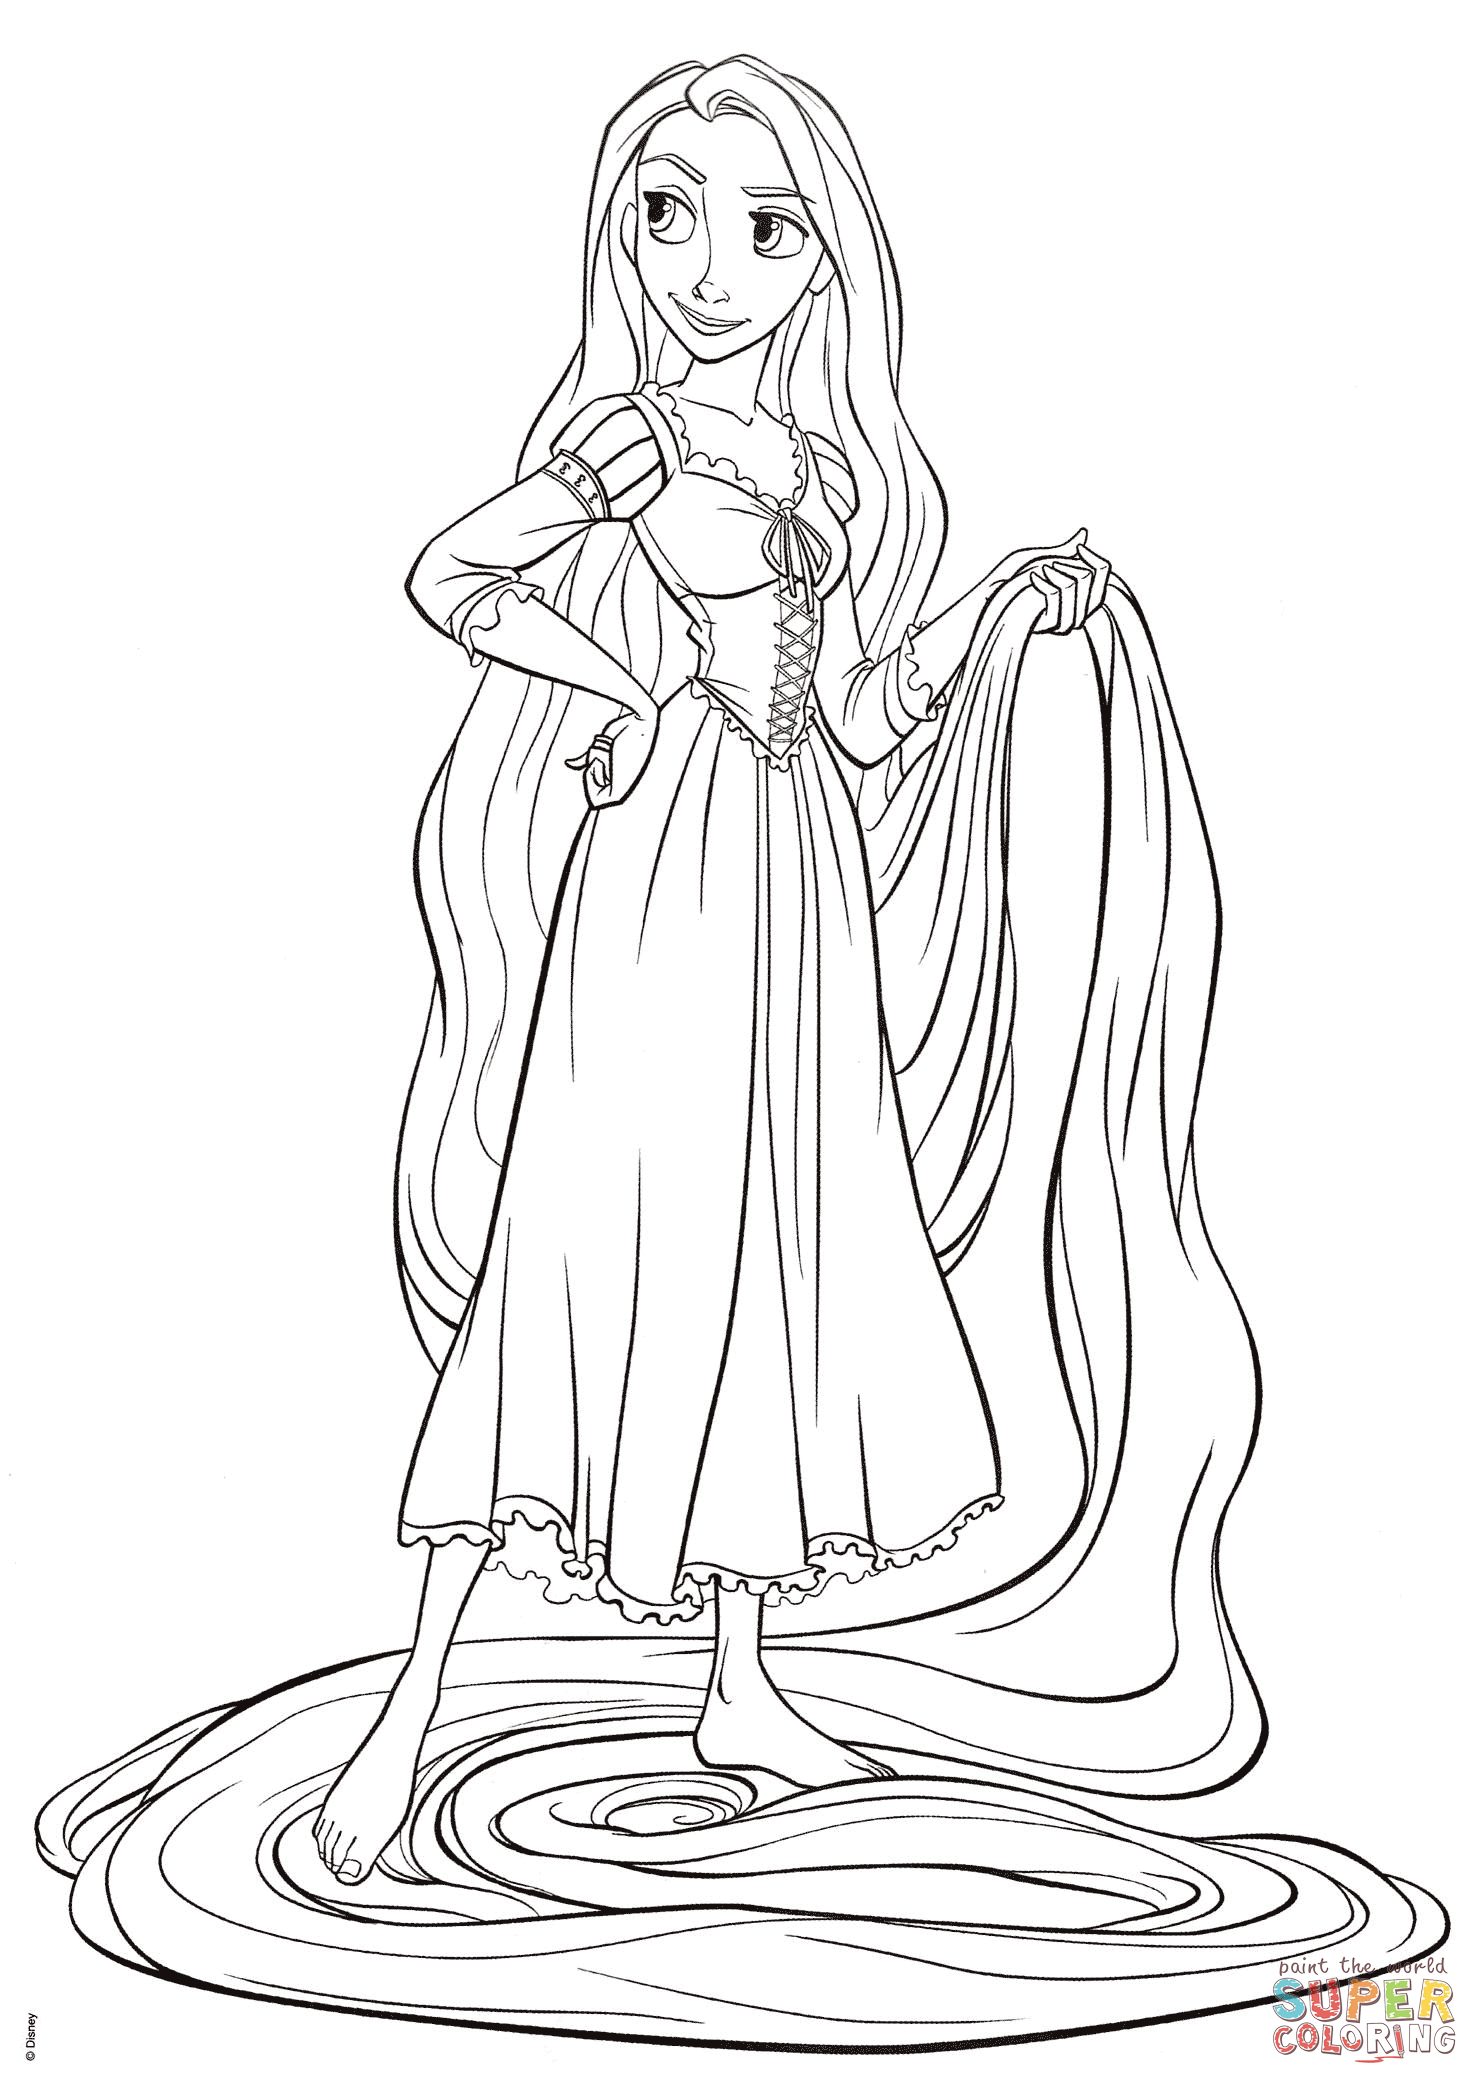 Rapunzel From Tangled Coloring Page Free Printable Coloring Pages